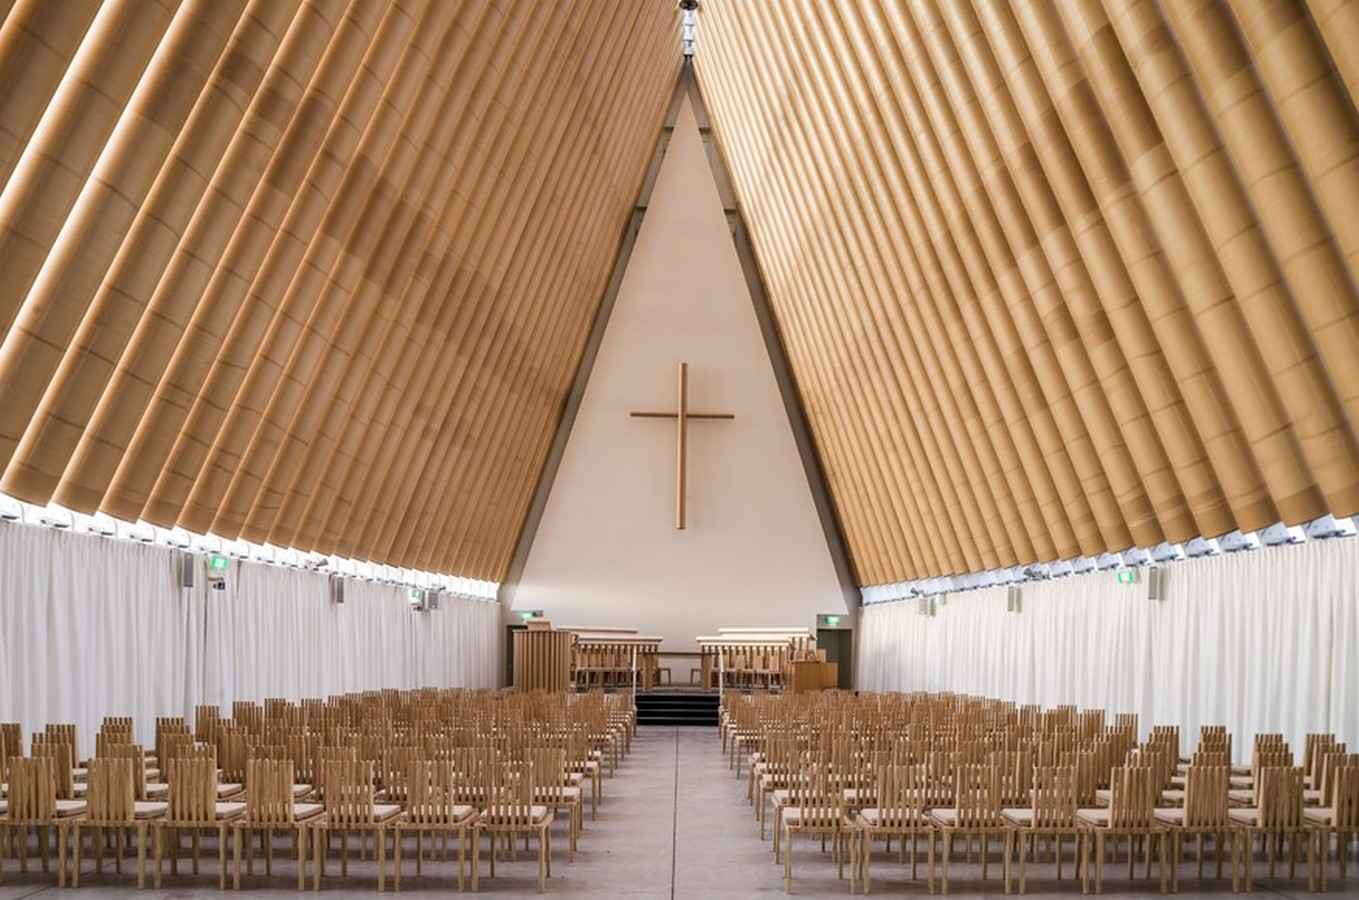 Cardboard Cathedral, New Zealand Sheet3